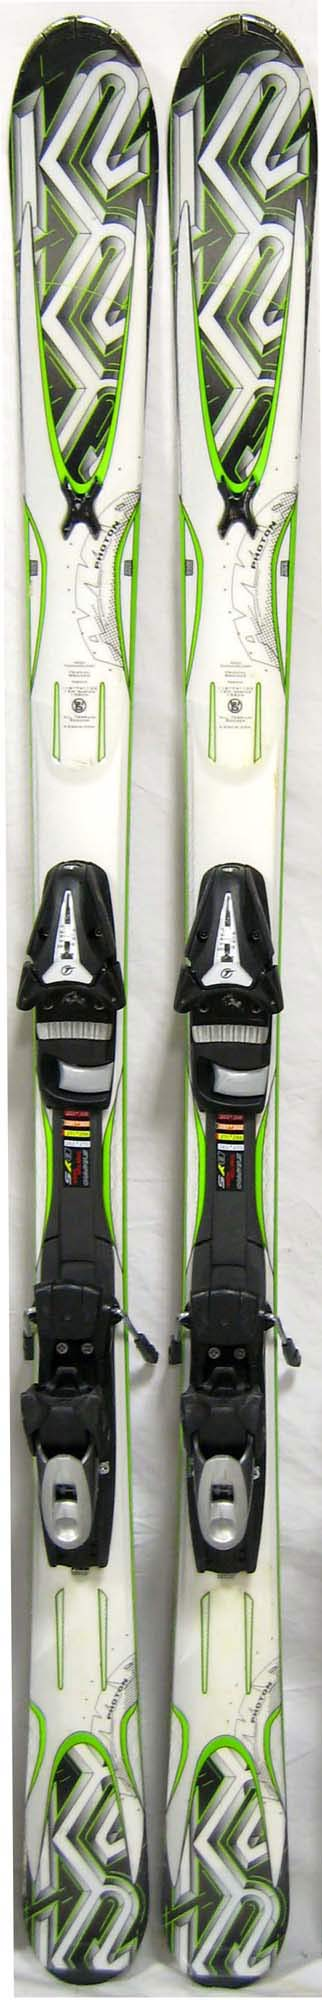 Topsheets of 2011 K2 Amp Photon Skis For Sale